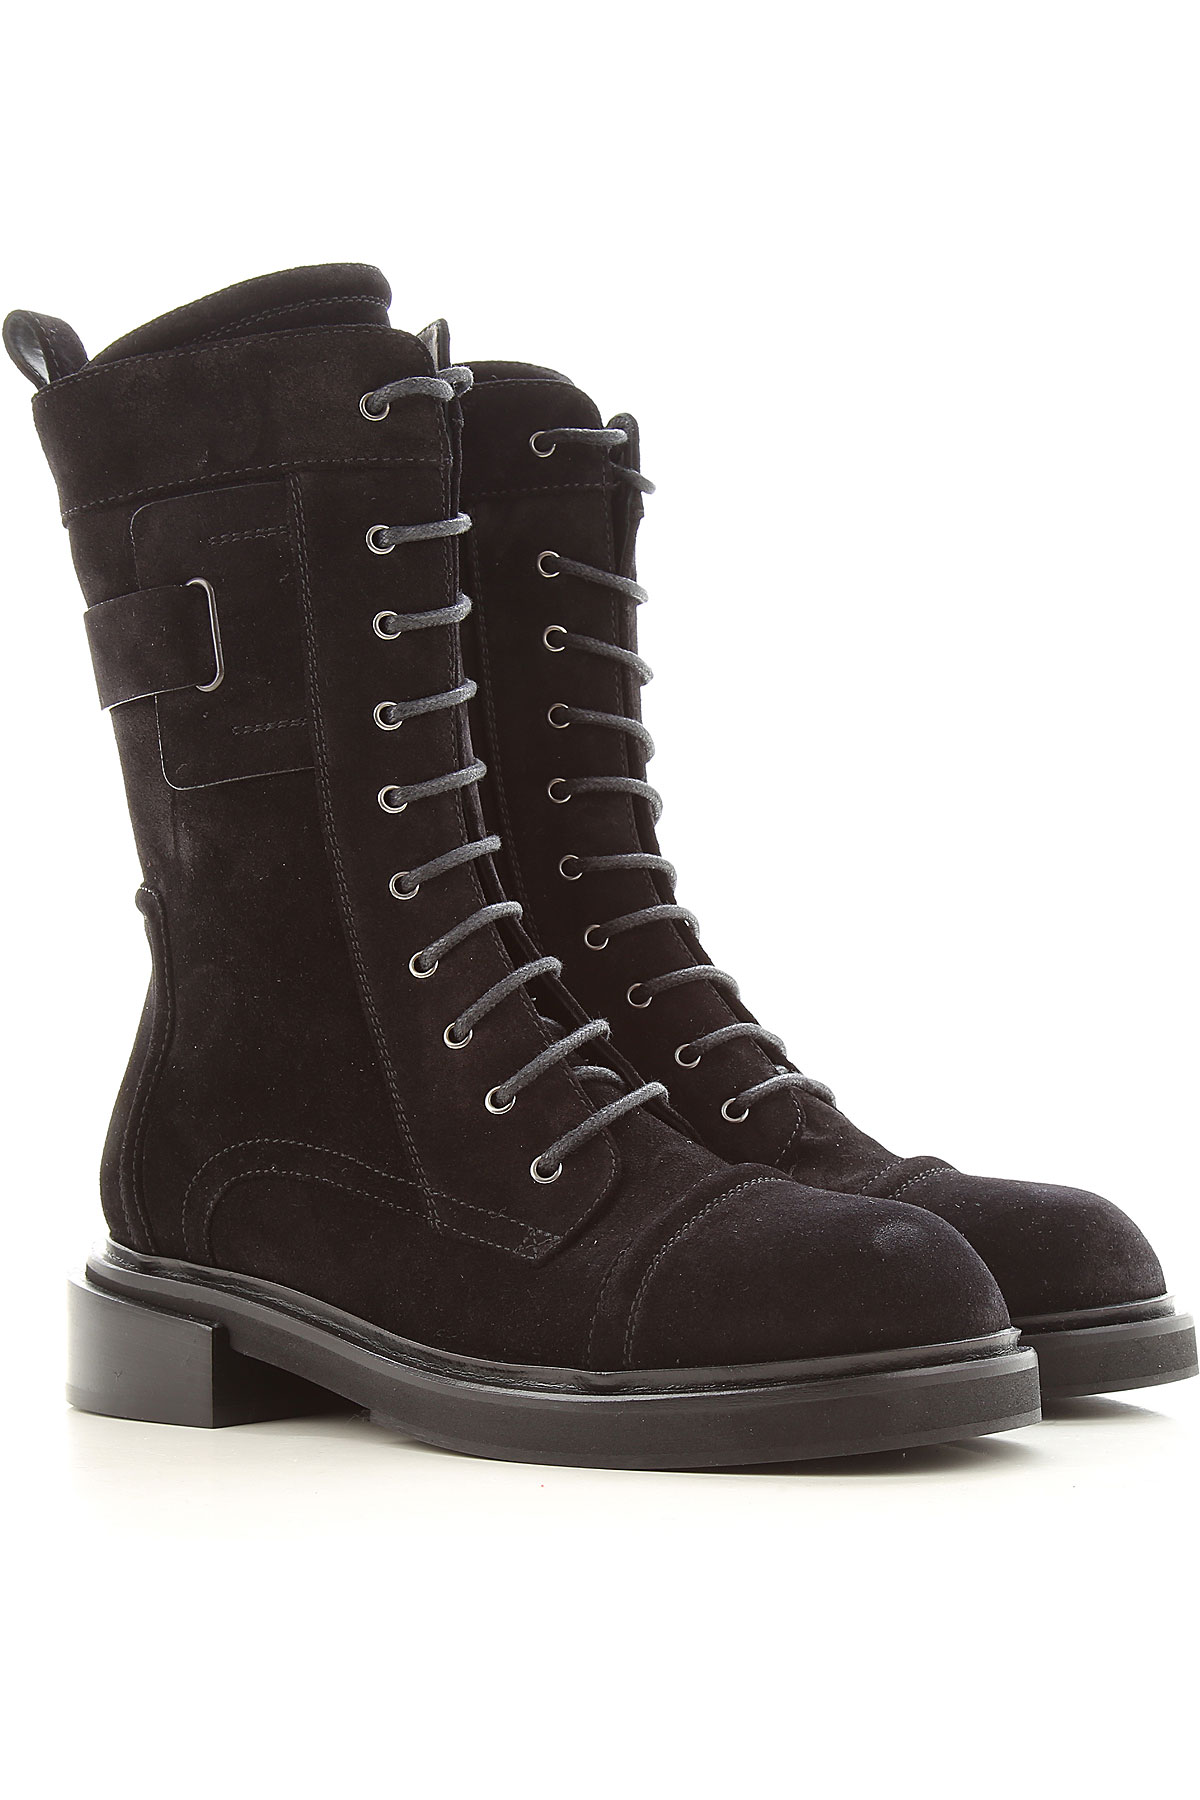 Lella Baldi Boots for Women, Booties On Sale, Black, Suede leather, 2019, 10 6 7 8 9